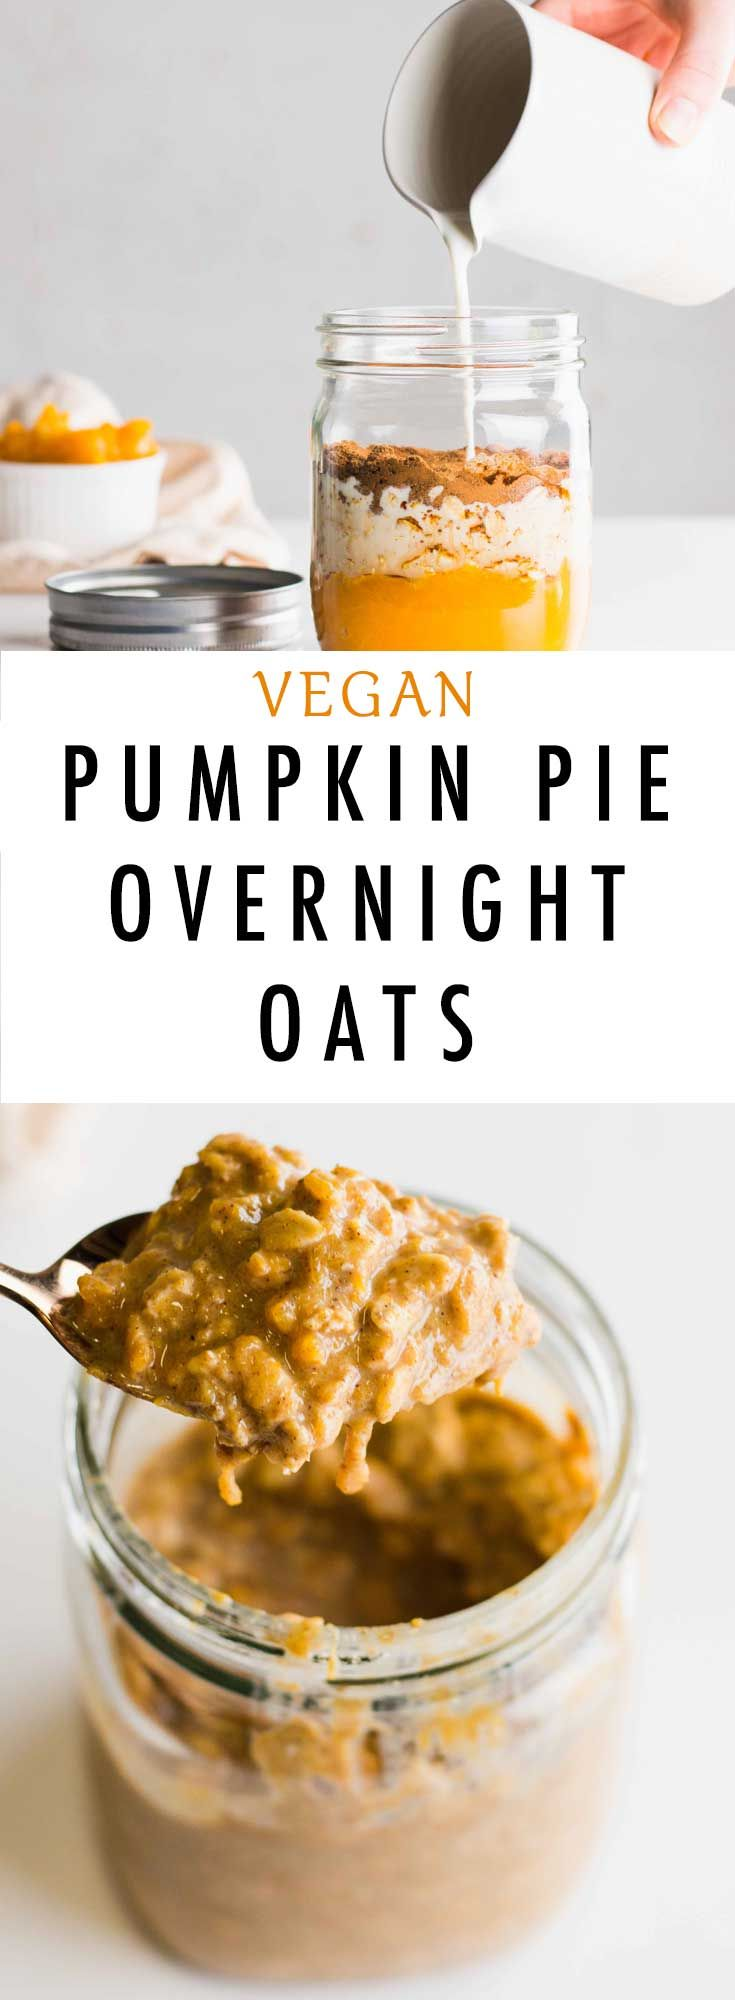 This Easy Vegan Pumpkin Pie Overnight Oats recipe is the ultimate breakfast choice for fall and winter. Made with almond milk, gluten-free oats and coconut sugar it is definitely a winner!